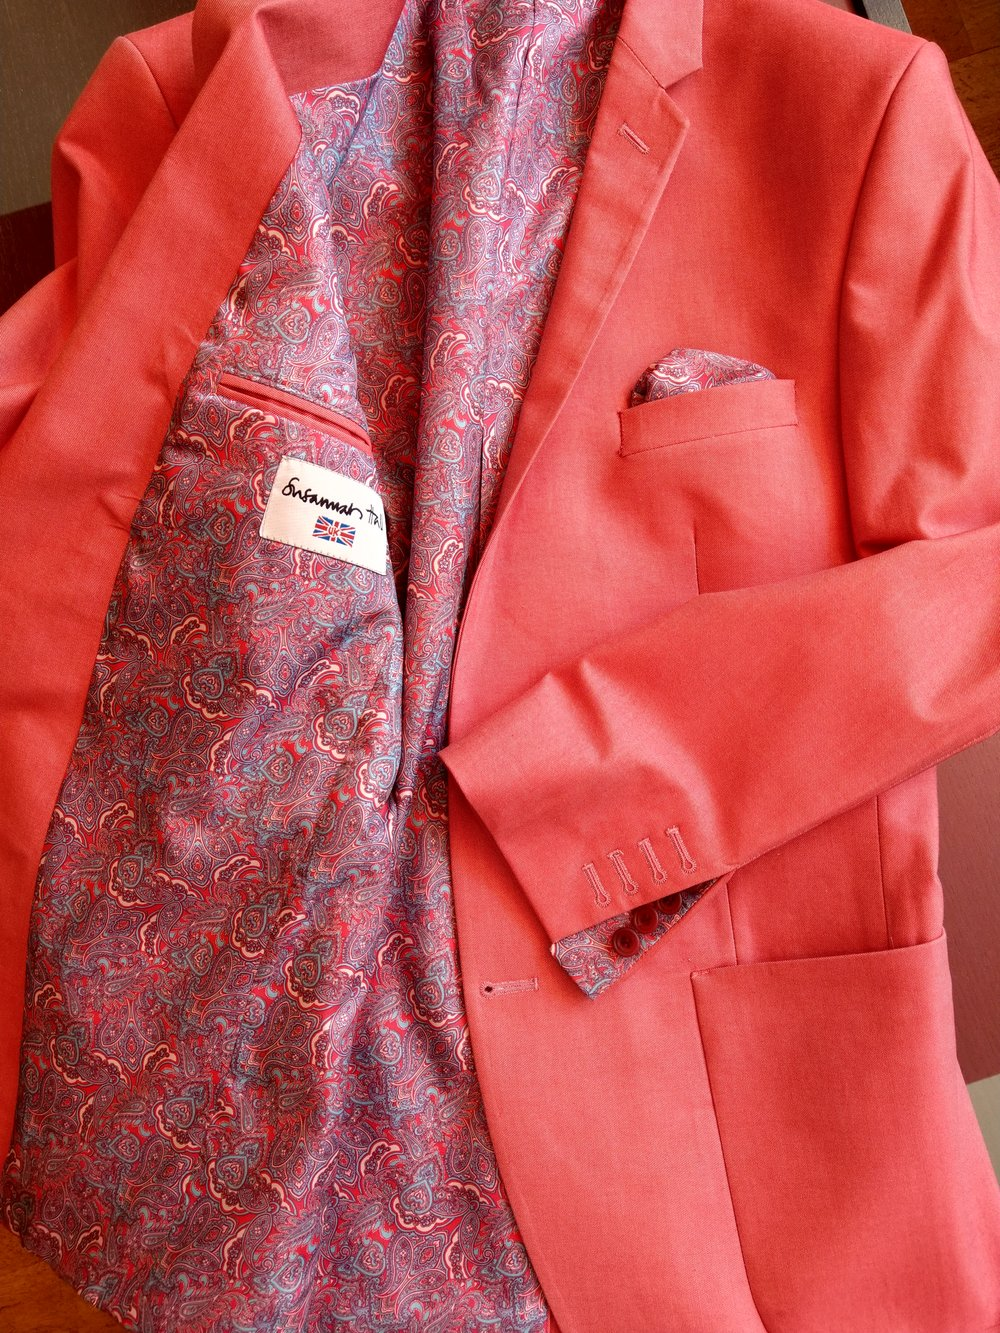 coral-dormeuil-cotton-susannah-hall-tailors-bespoke-barringon-fabric-lining-mae-uk-british.jpg